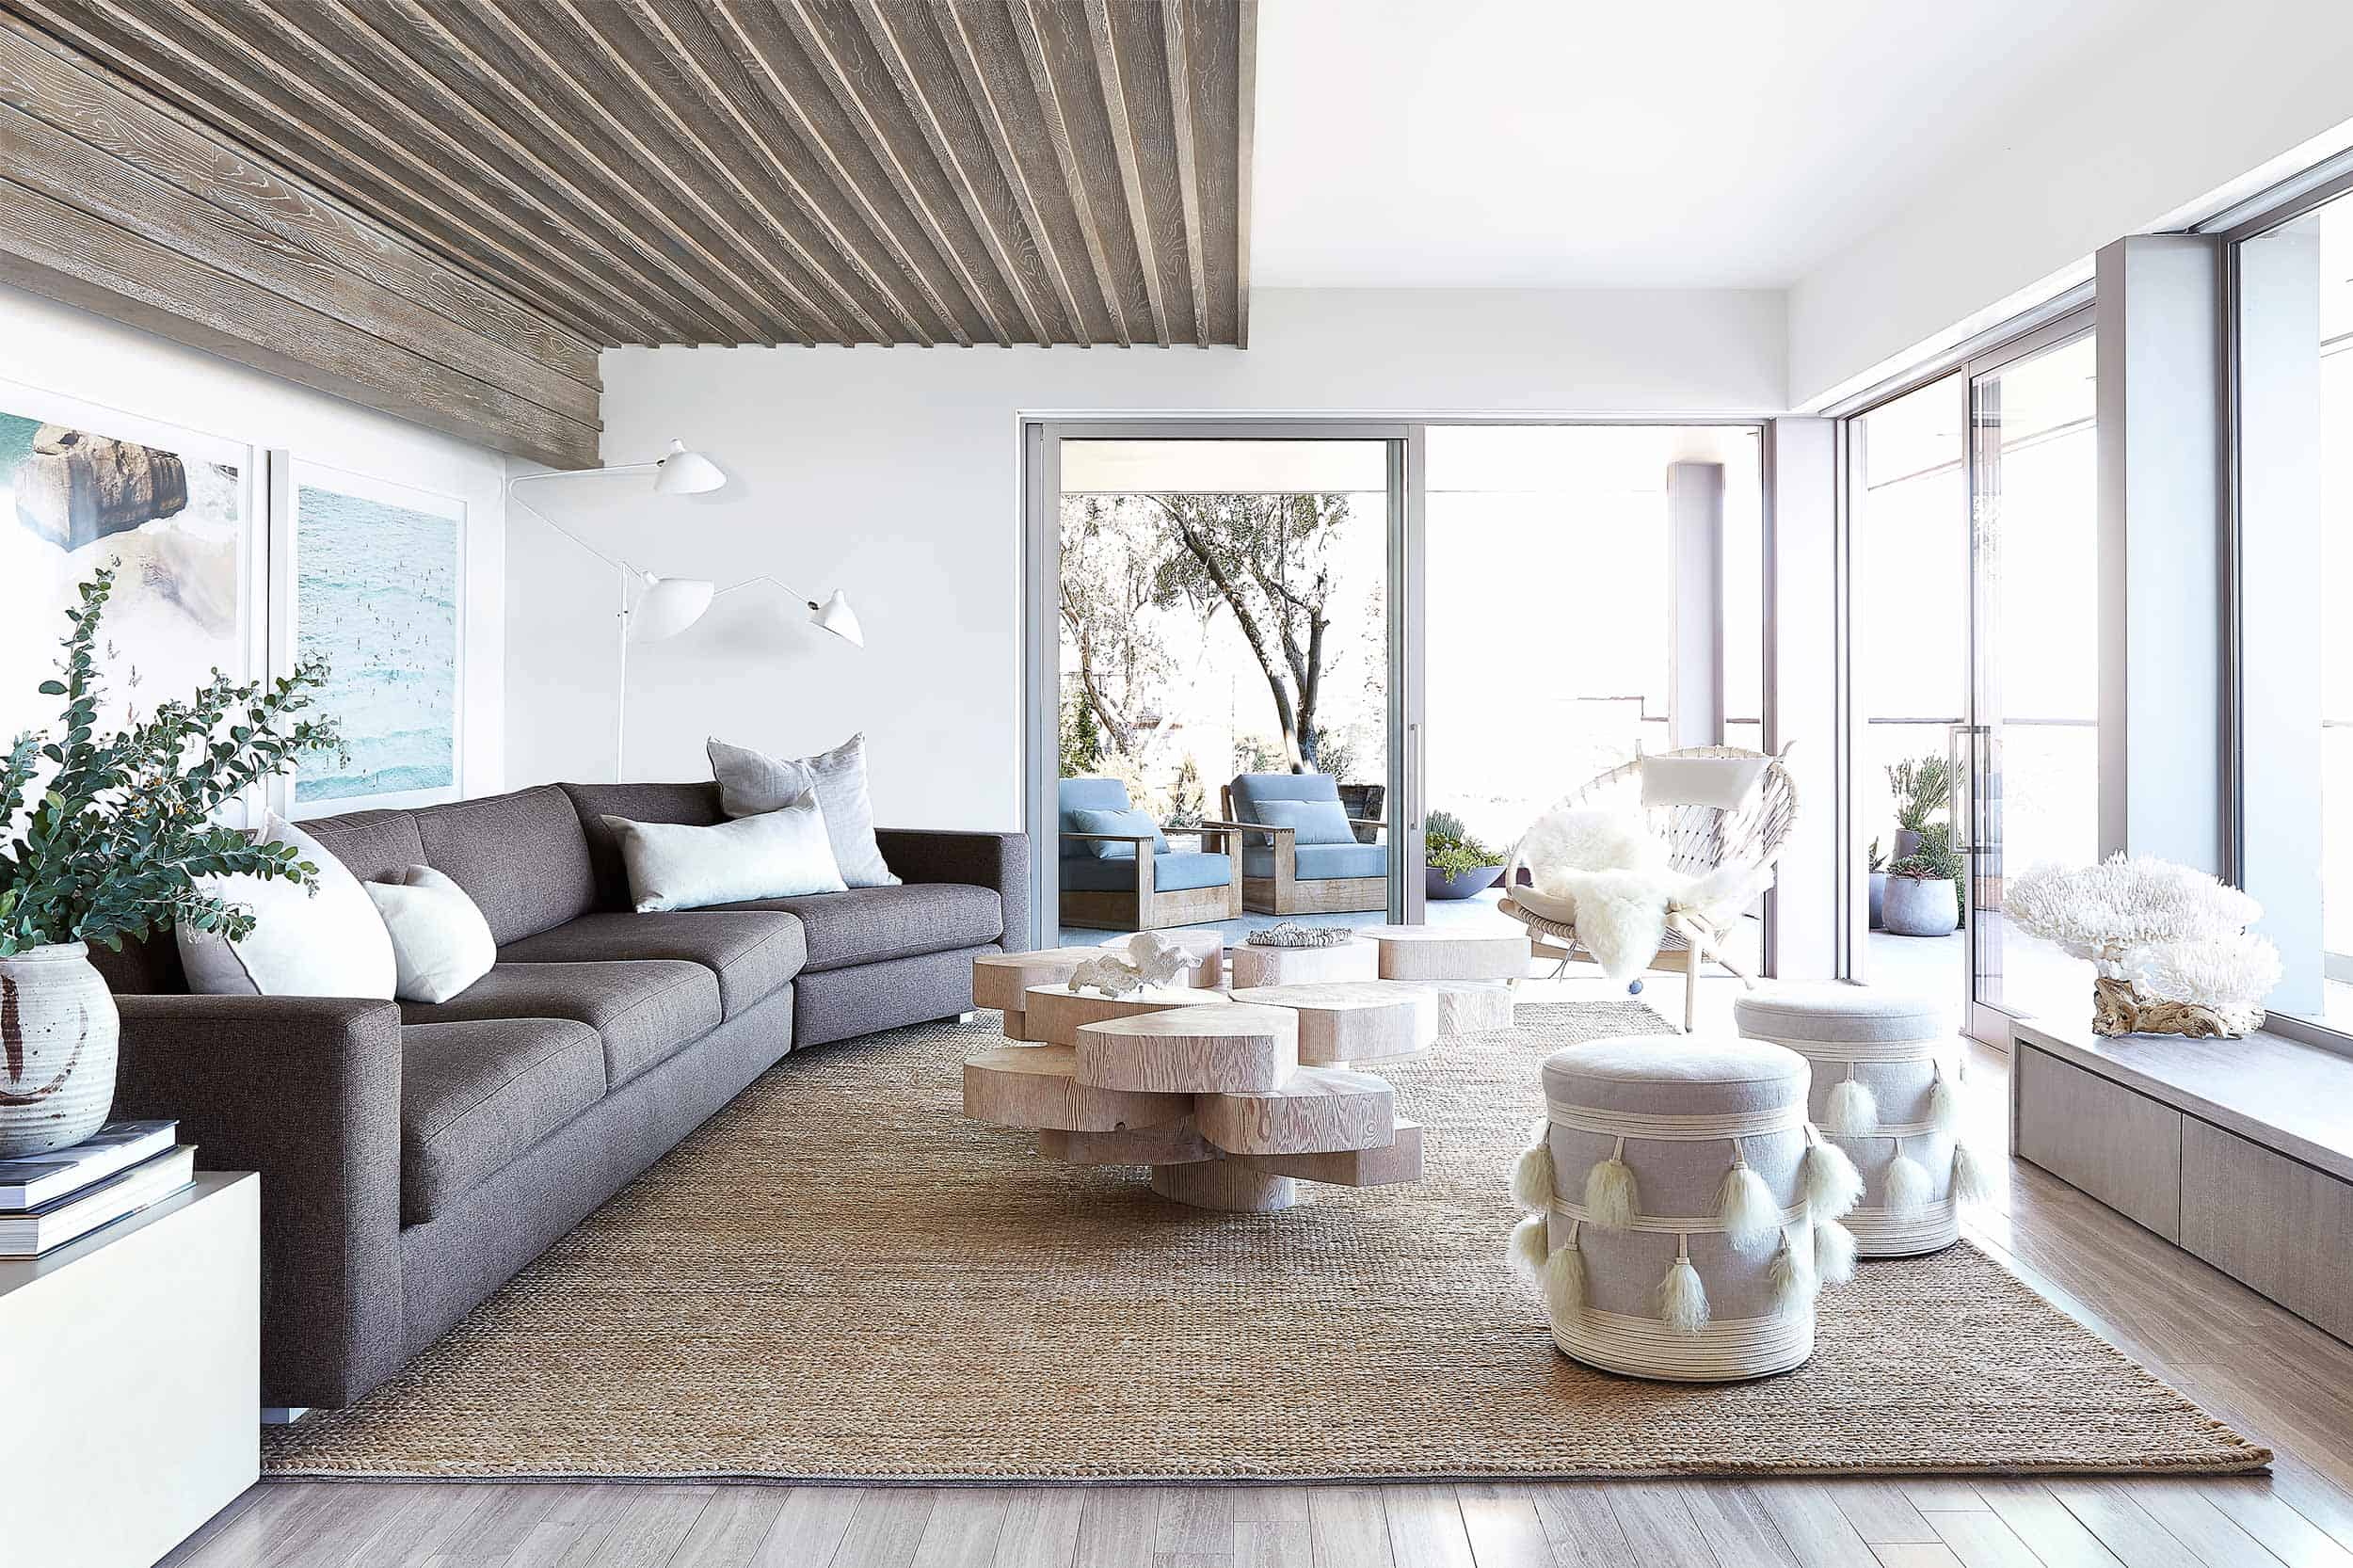 Modern Seaside Retreat-Jamie Bush-01-1 Kindesign